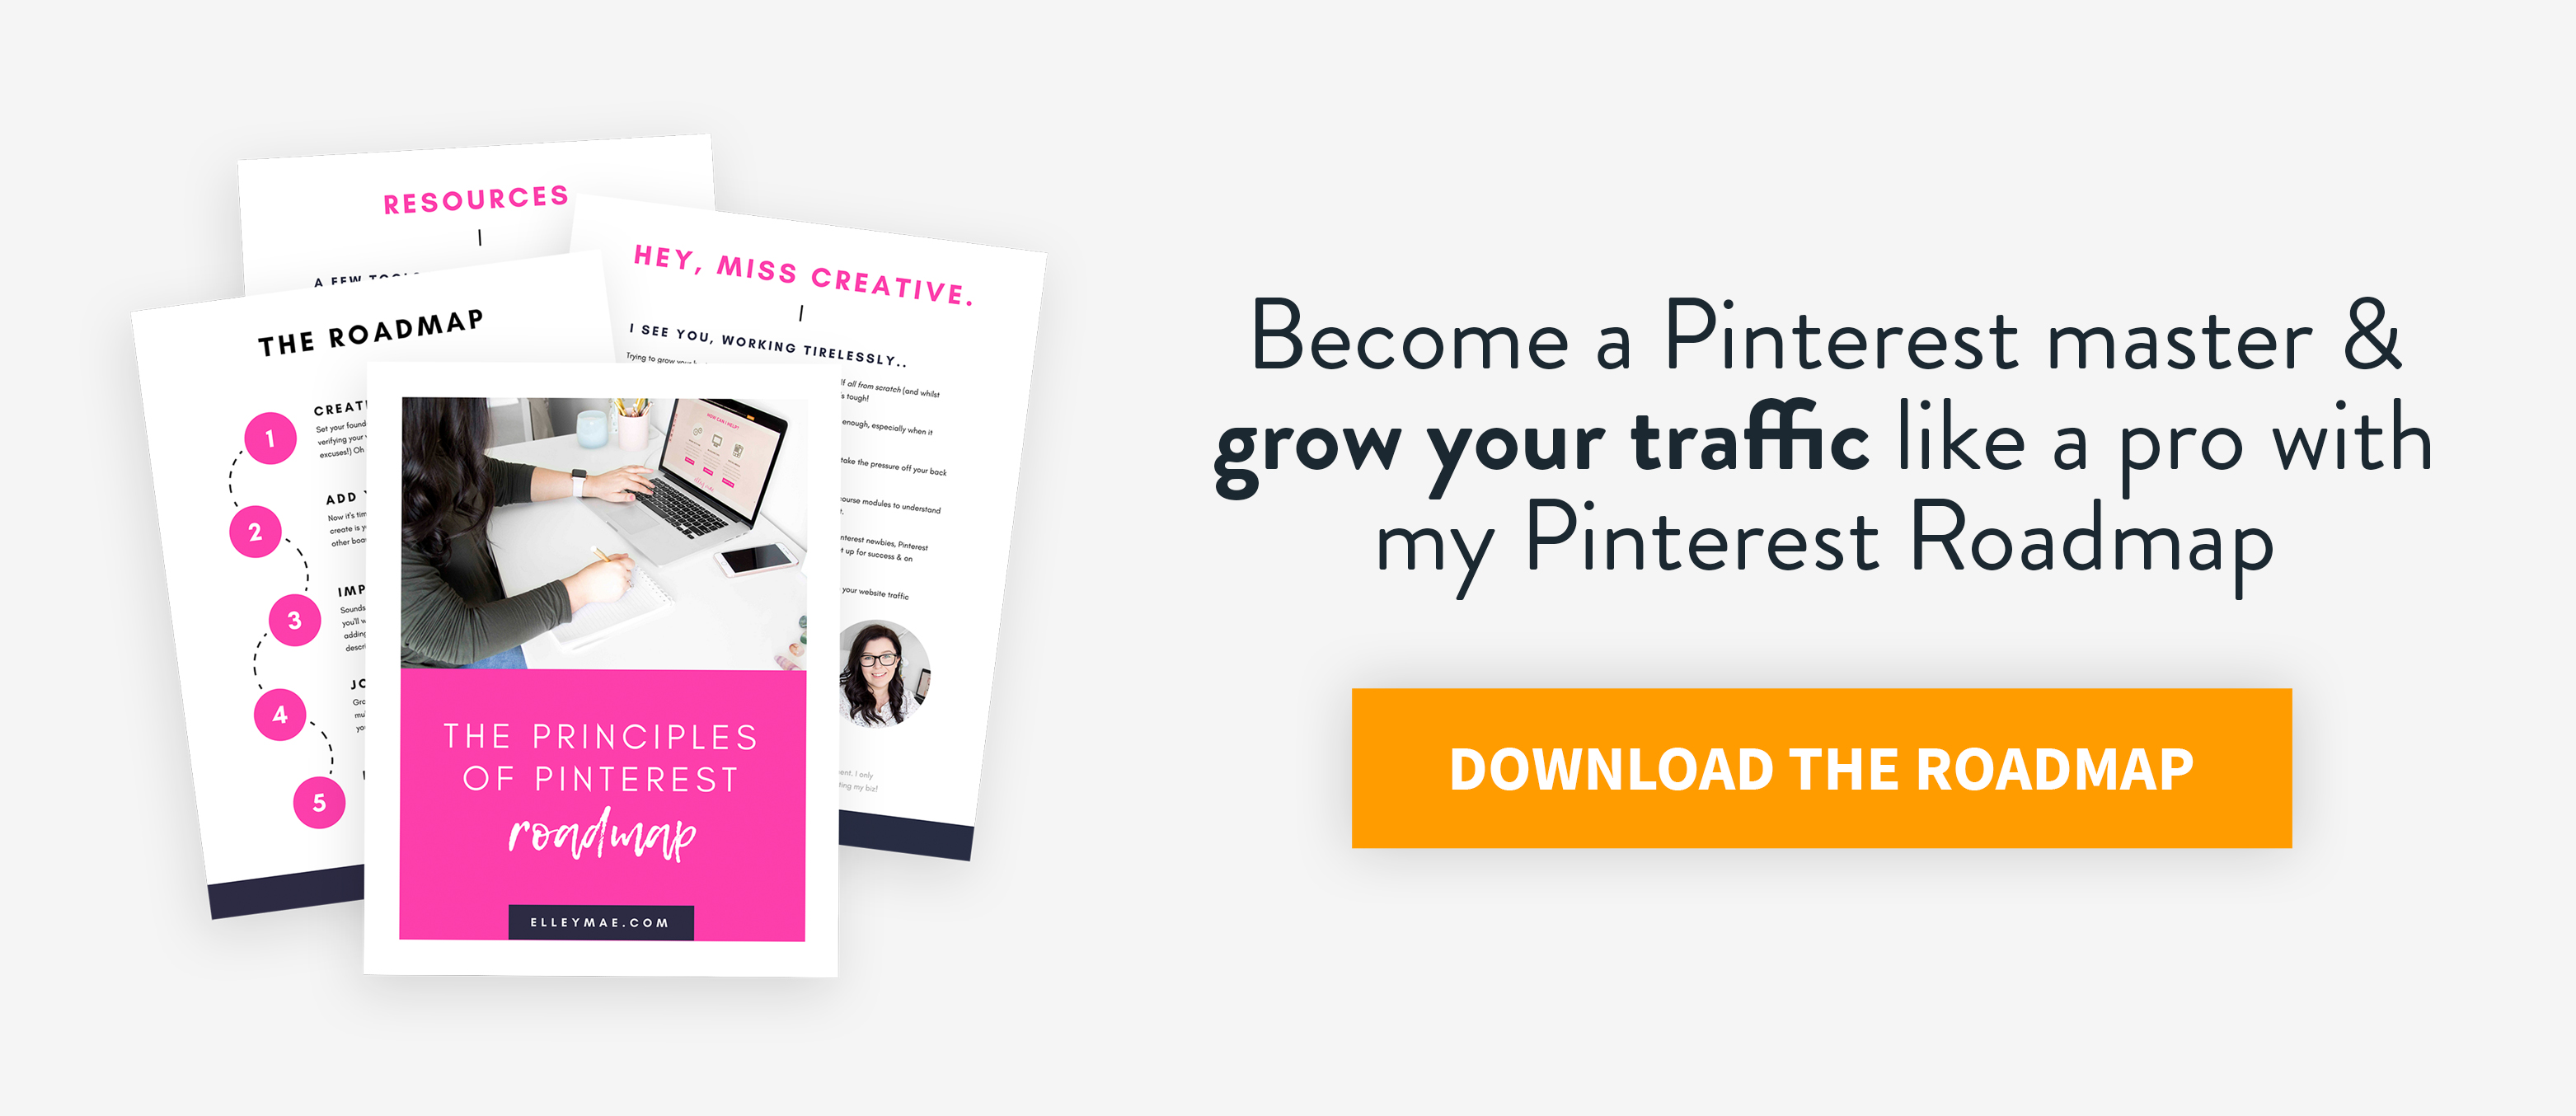 The Principles of Pinterest Roadmap | Are you ready to grow your blog traffic, increase your conversions & finally become a master at Pinterest? Girl, I've got you covered. Download my FREE Pinterest Roadmap now & become a pro in no time at all! | Pinterest Roadmap, Pinterest Manager, Pinterest Graphics, Pinterest Templates, Pinterest Strategy, Pinterest Tutorial, Tailwind, Tailwind for Pinterest, Pinterest Marketing, Social Media Marketing | #Pinterest #PinterestRoadmap #PinterestManager